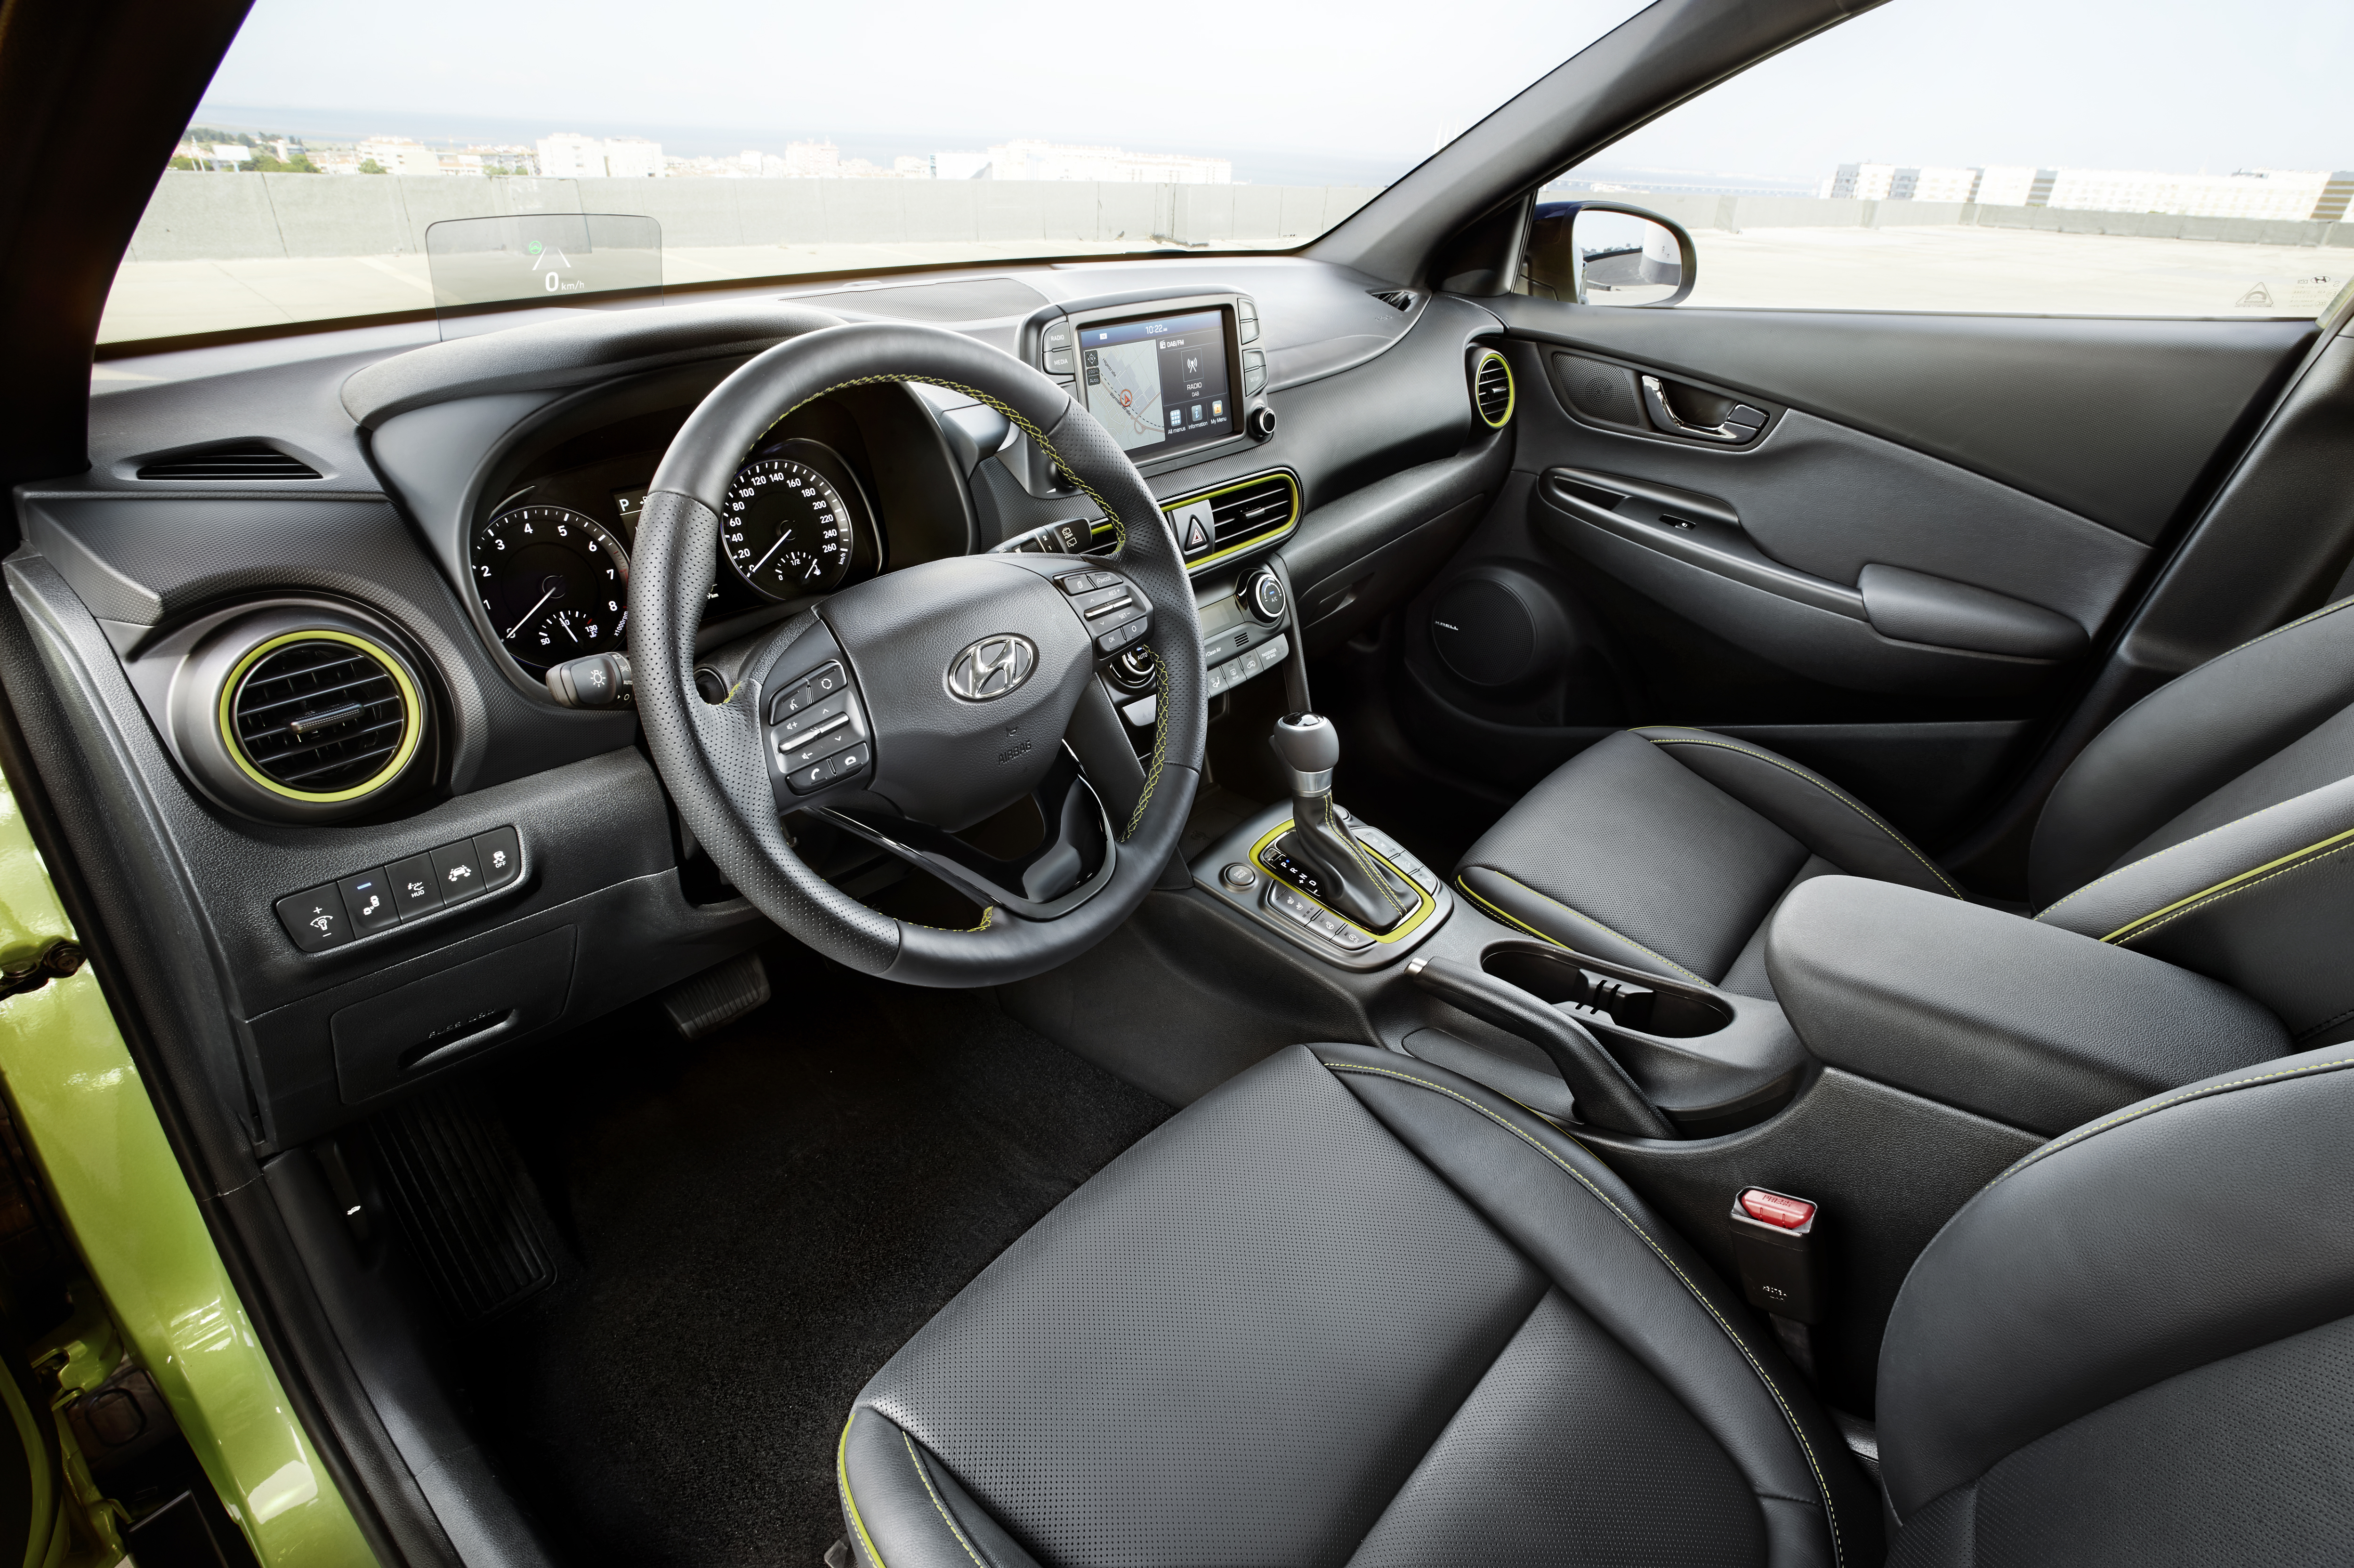 gallery hyundai kona on the road with interior image 672053. Black Bedroom Furniture Sets. Home Design Ideas